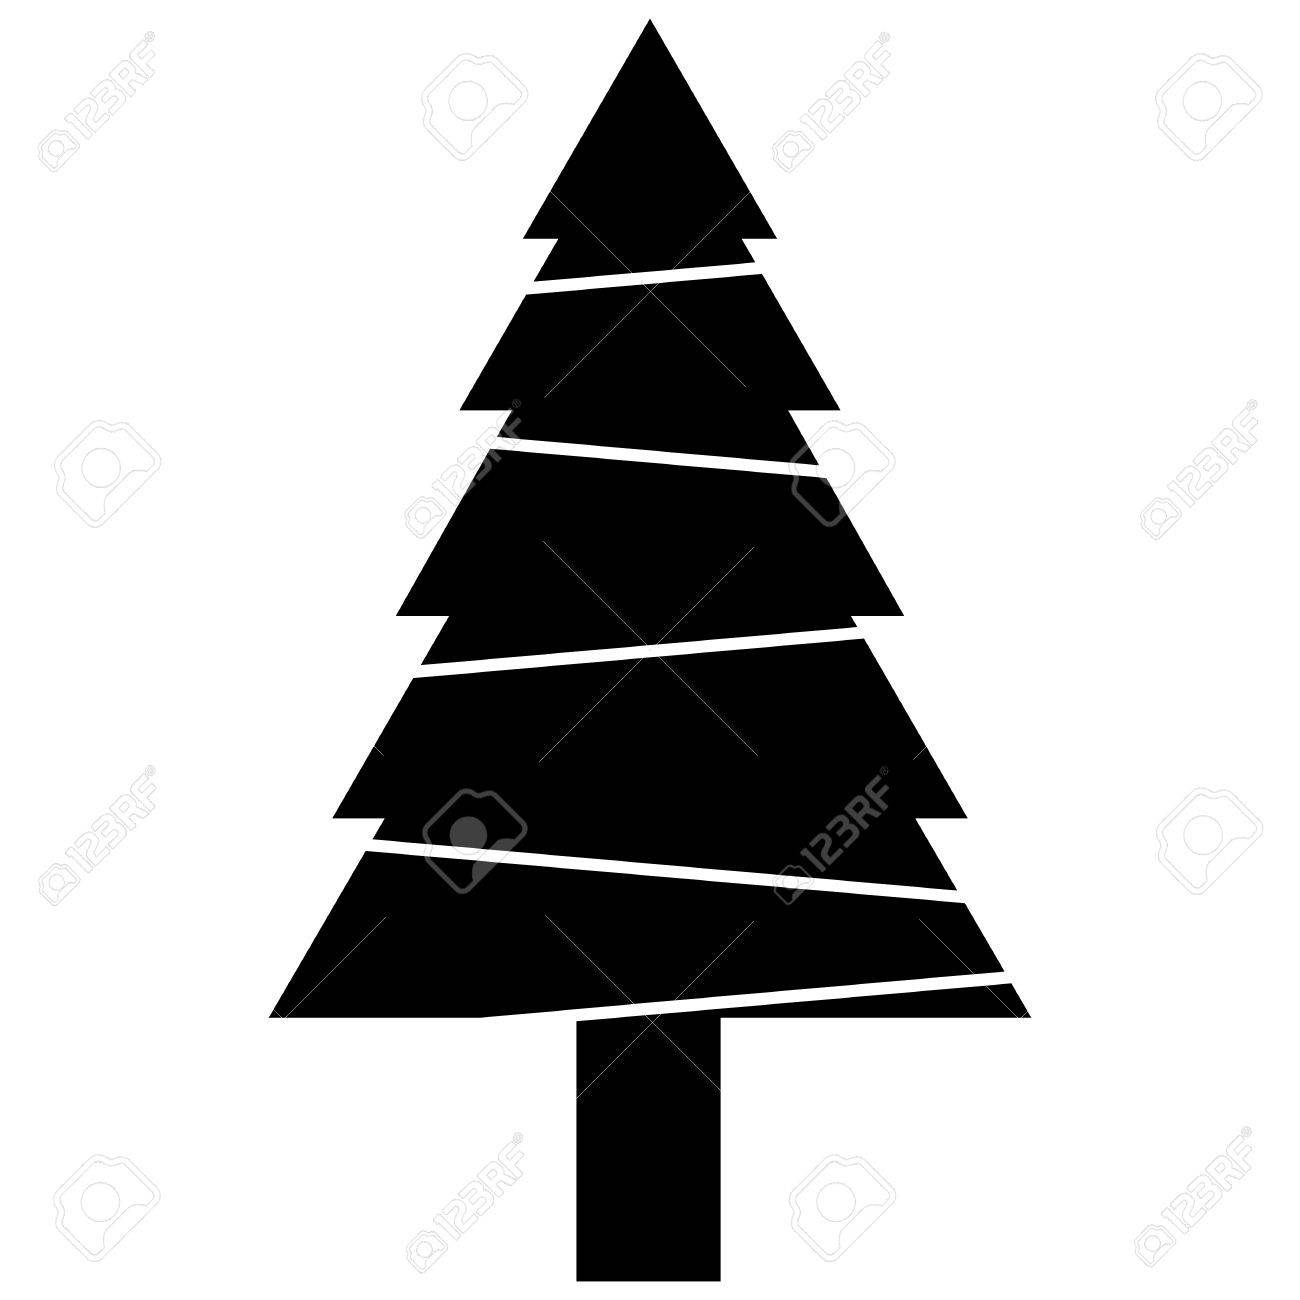 Christmas Tree Vector Image.Black Christmas Tree Vector